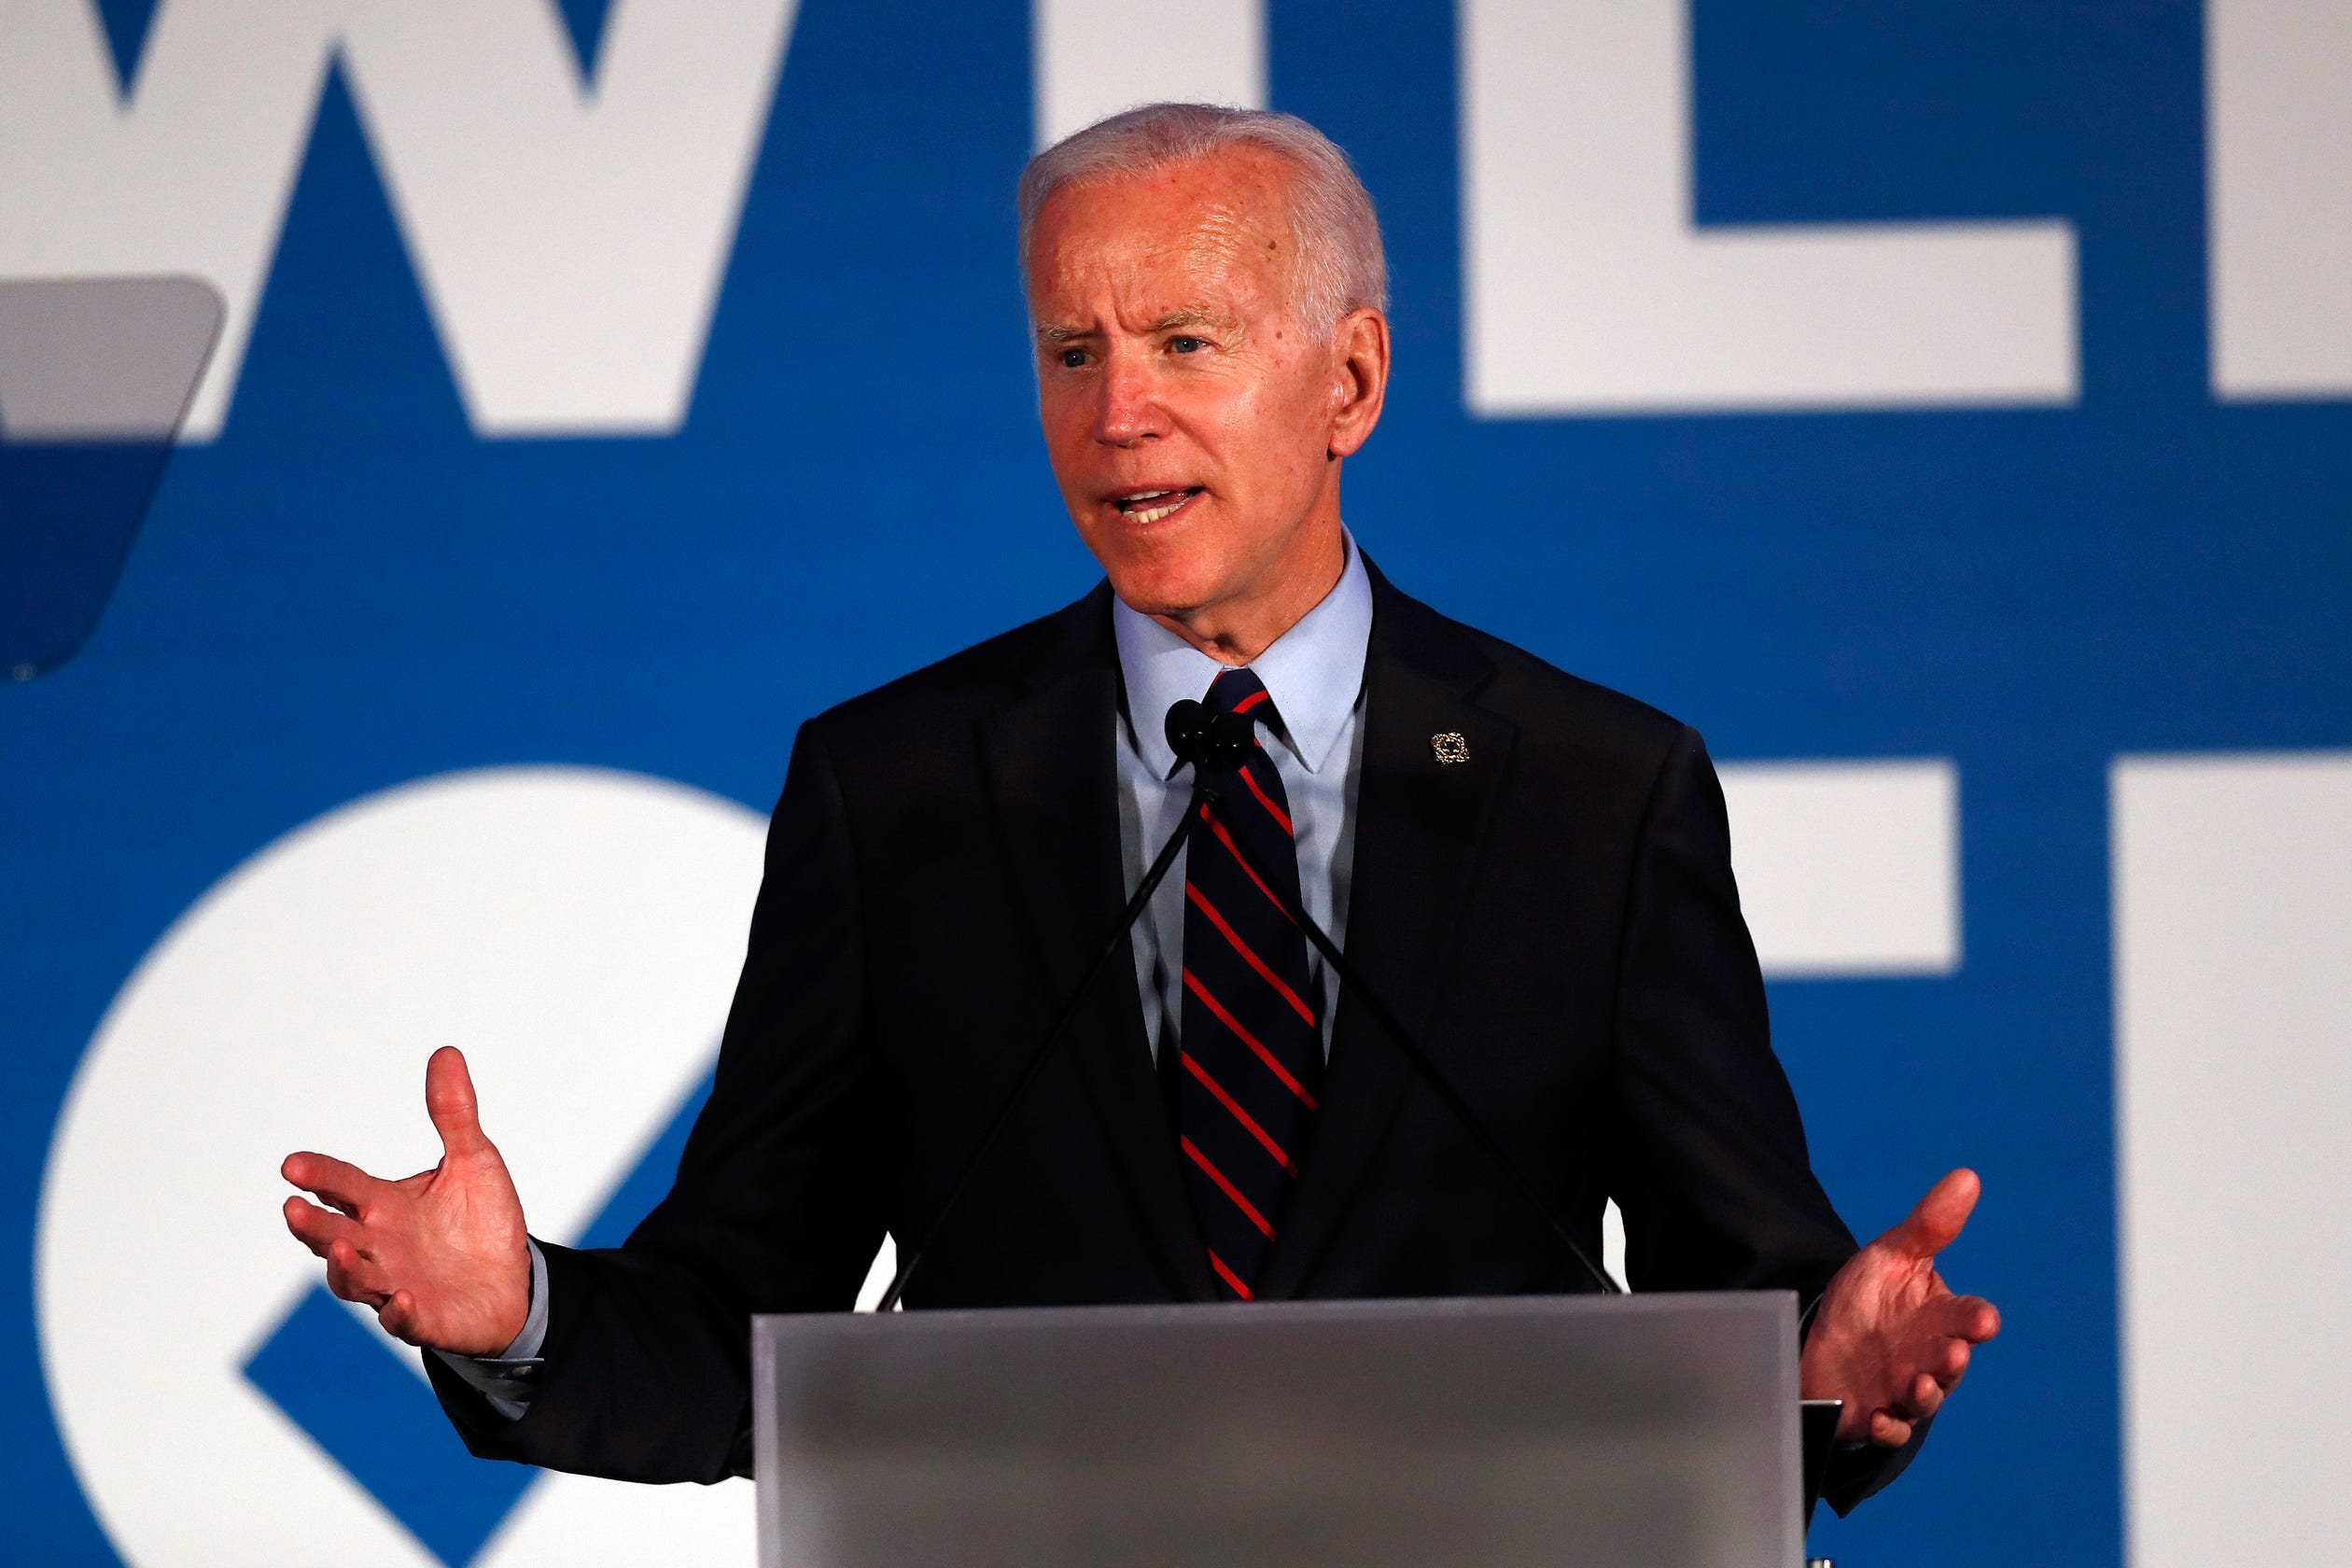 Scientific American magazine backs Joe Biden, its first presidential endorsement in 175 years thumbnail